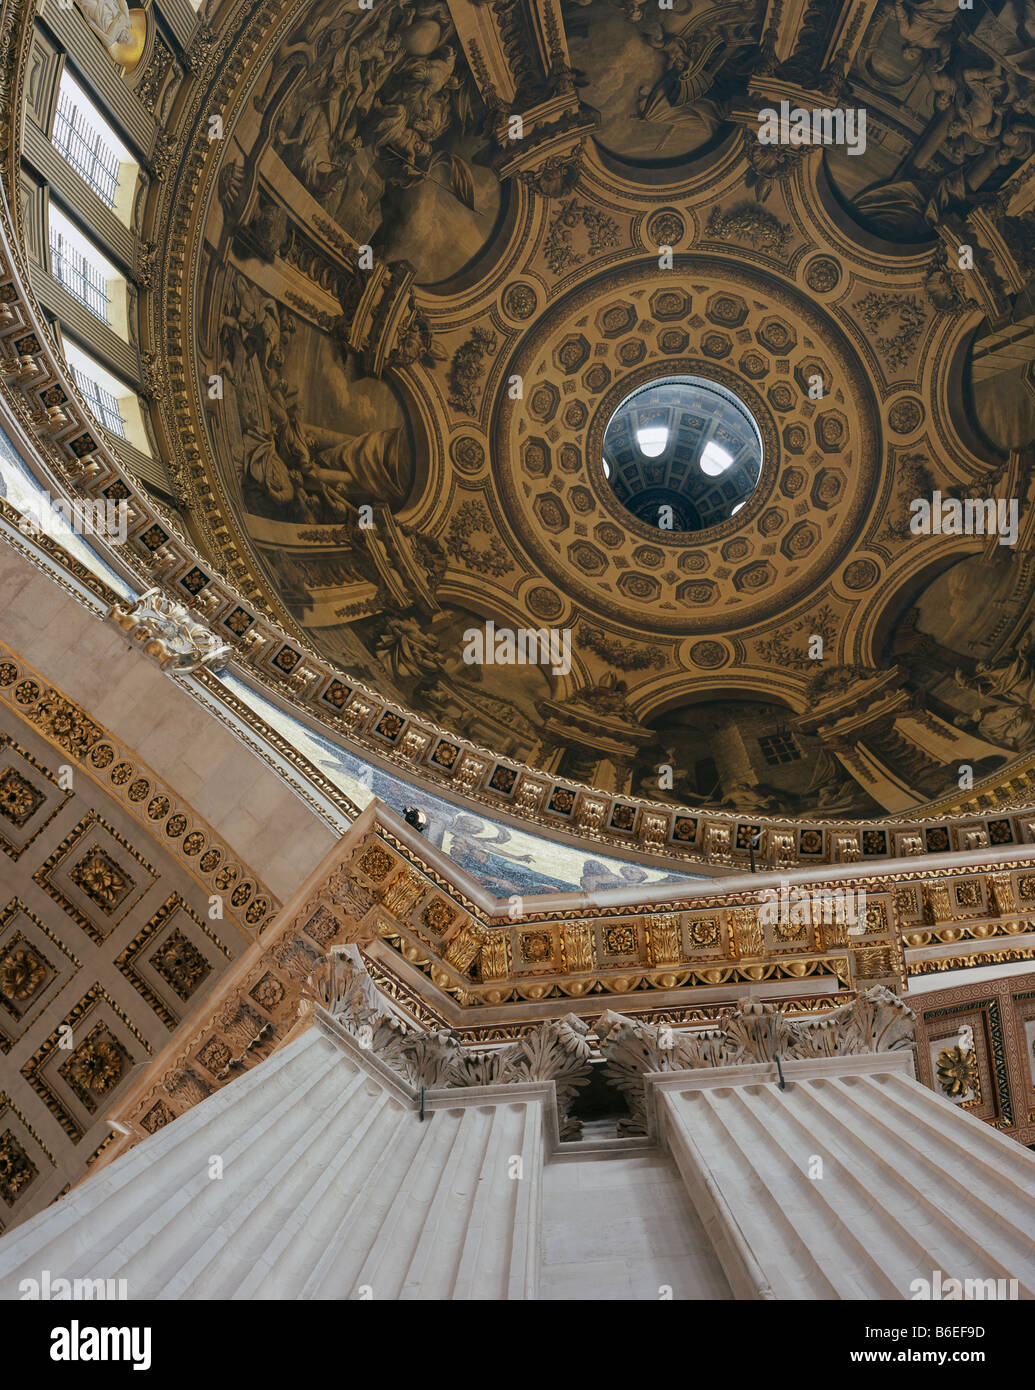 Saint Paul's Cathedral Dome Interior & Entablature - Stock Image